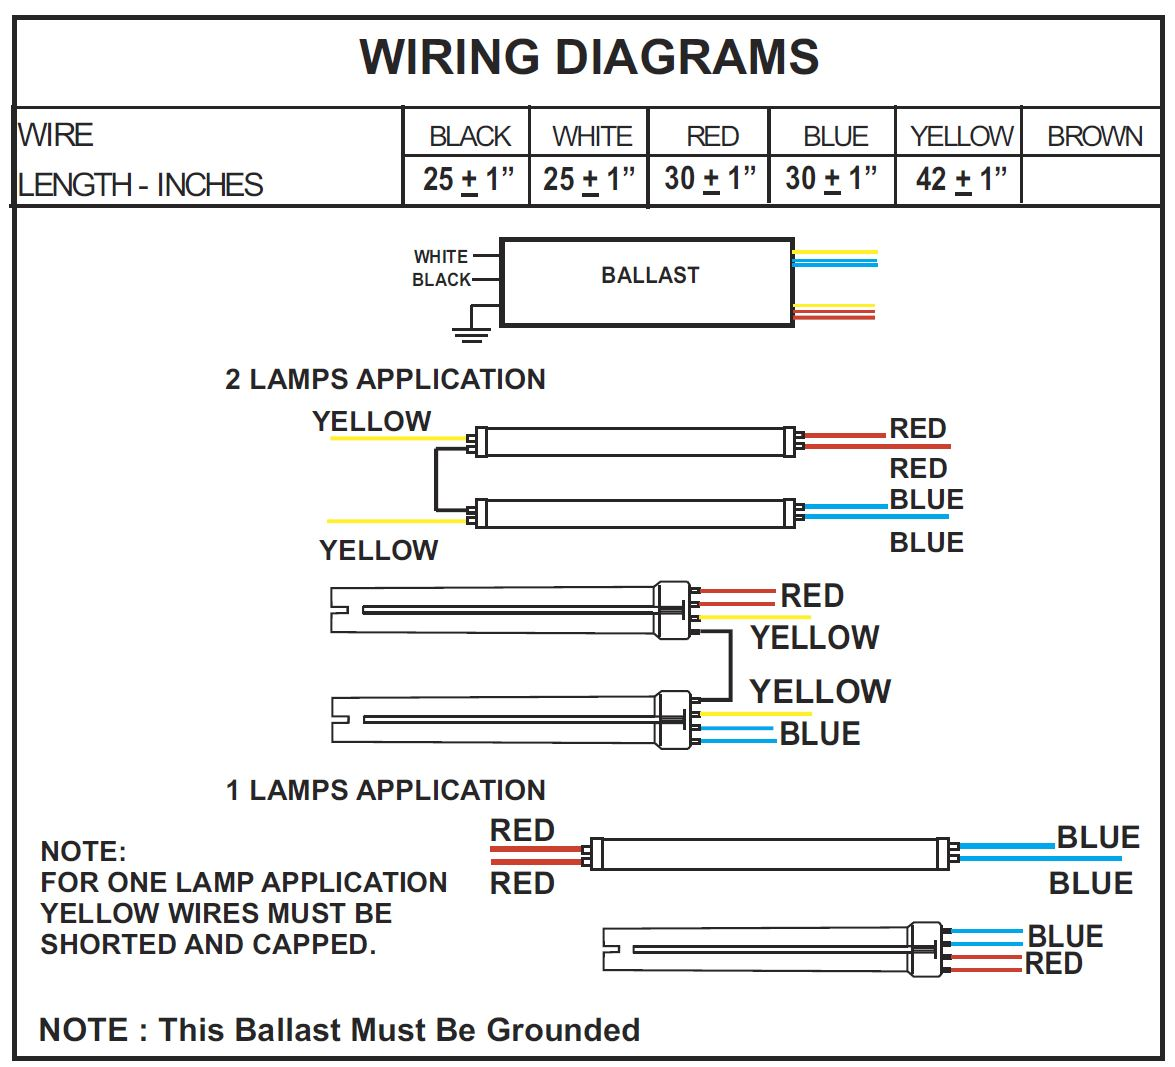 RHA UNV 254 LT5 wiring diagram rha unv 254 lt5 2 lamp t5 multi purpose electronic ballast sylvania led t8 wiring diagram at mifinder.co